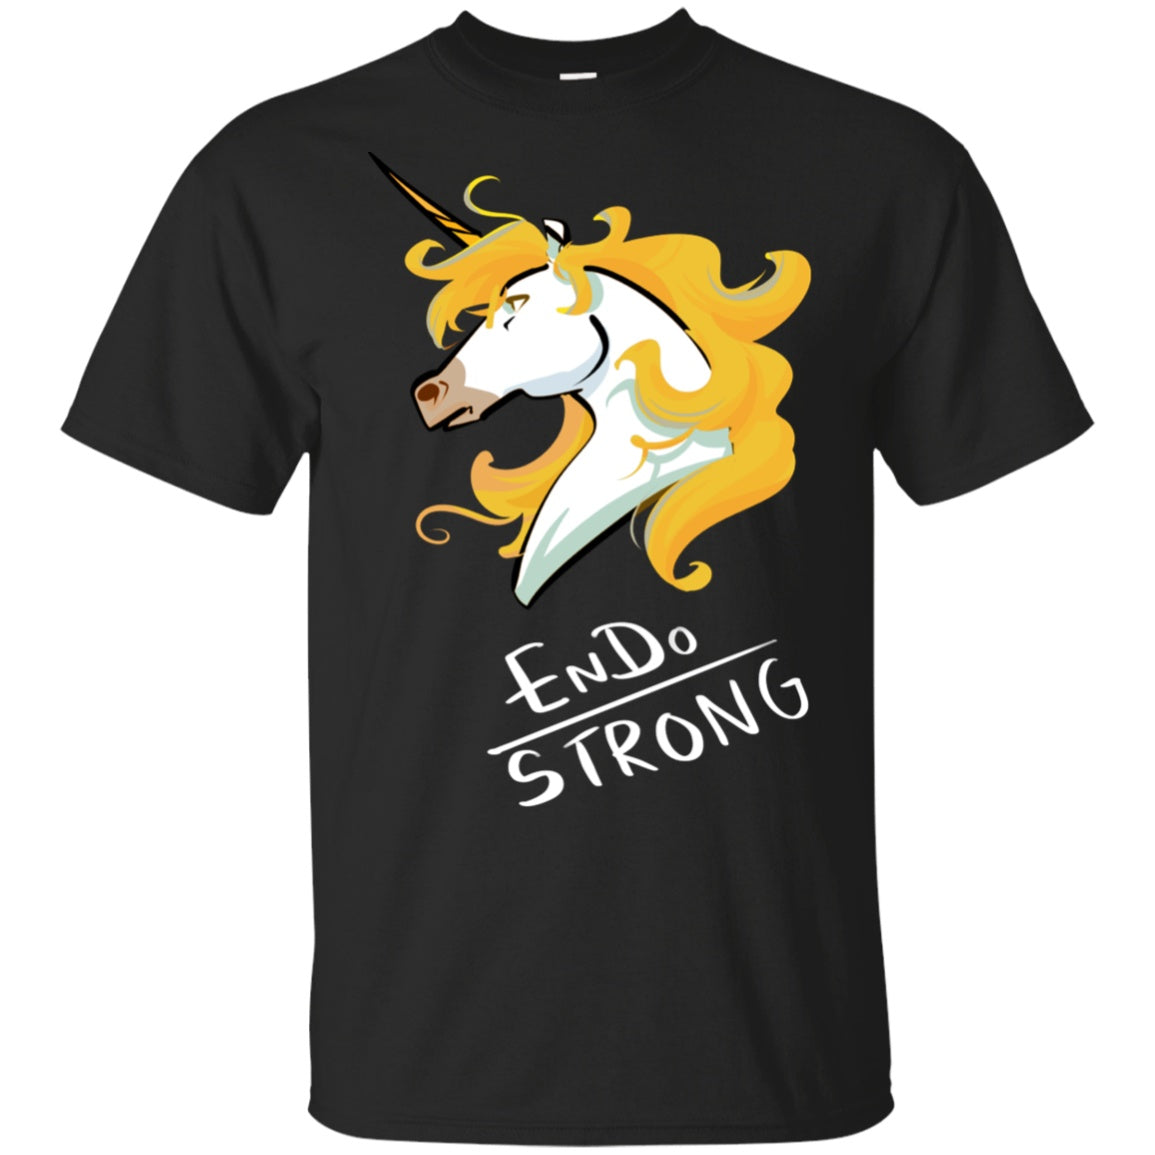 Endo Strong Unicorn Cotton Unisex T-Shirt - The Unchargeables